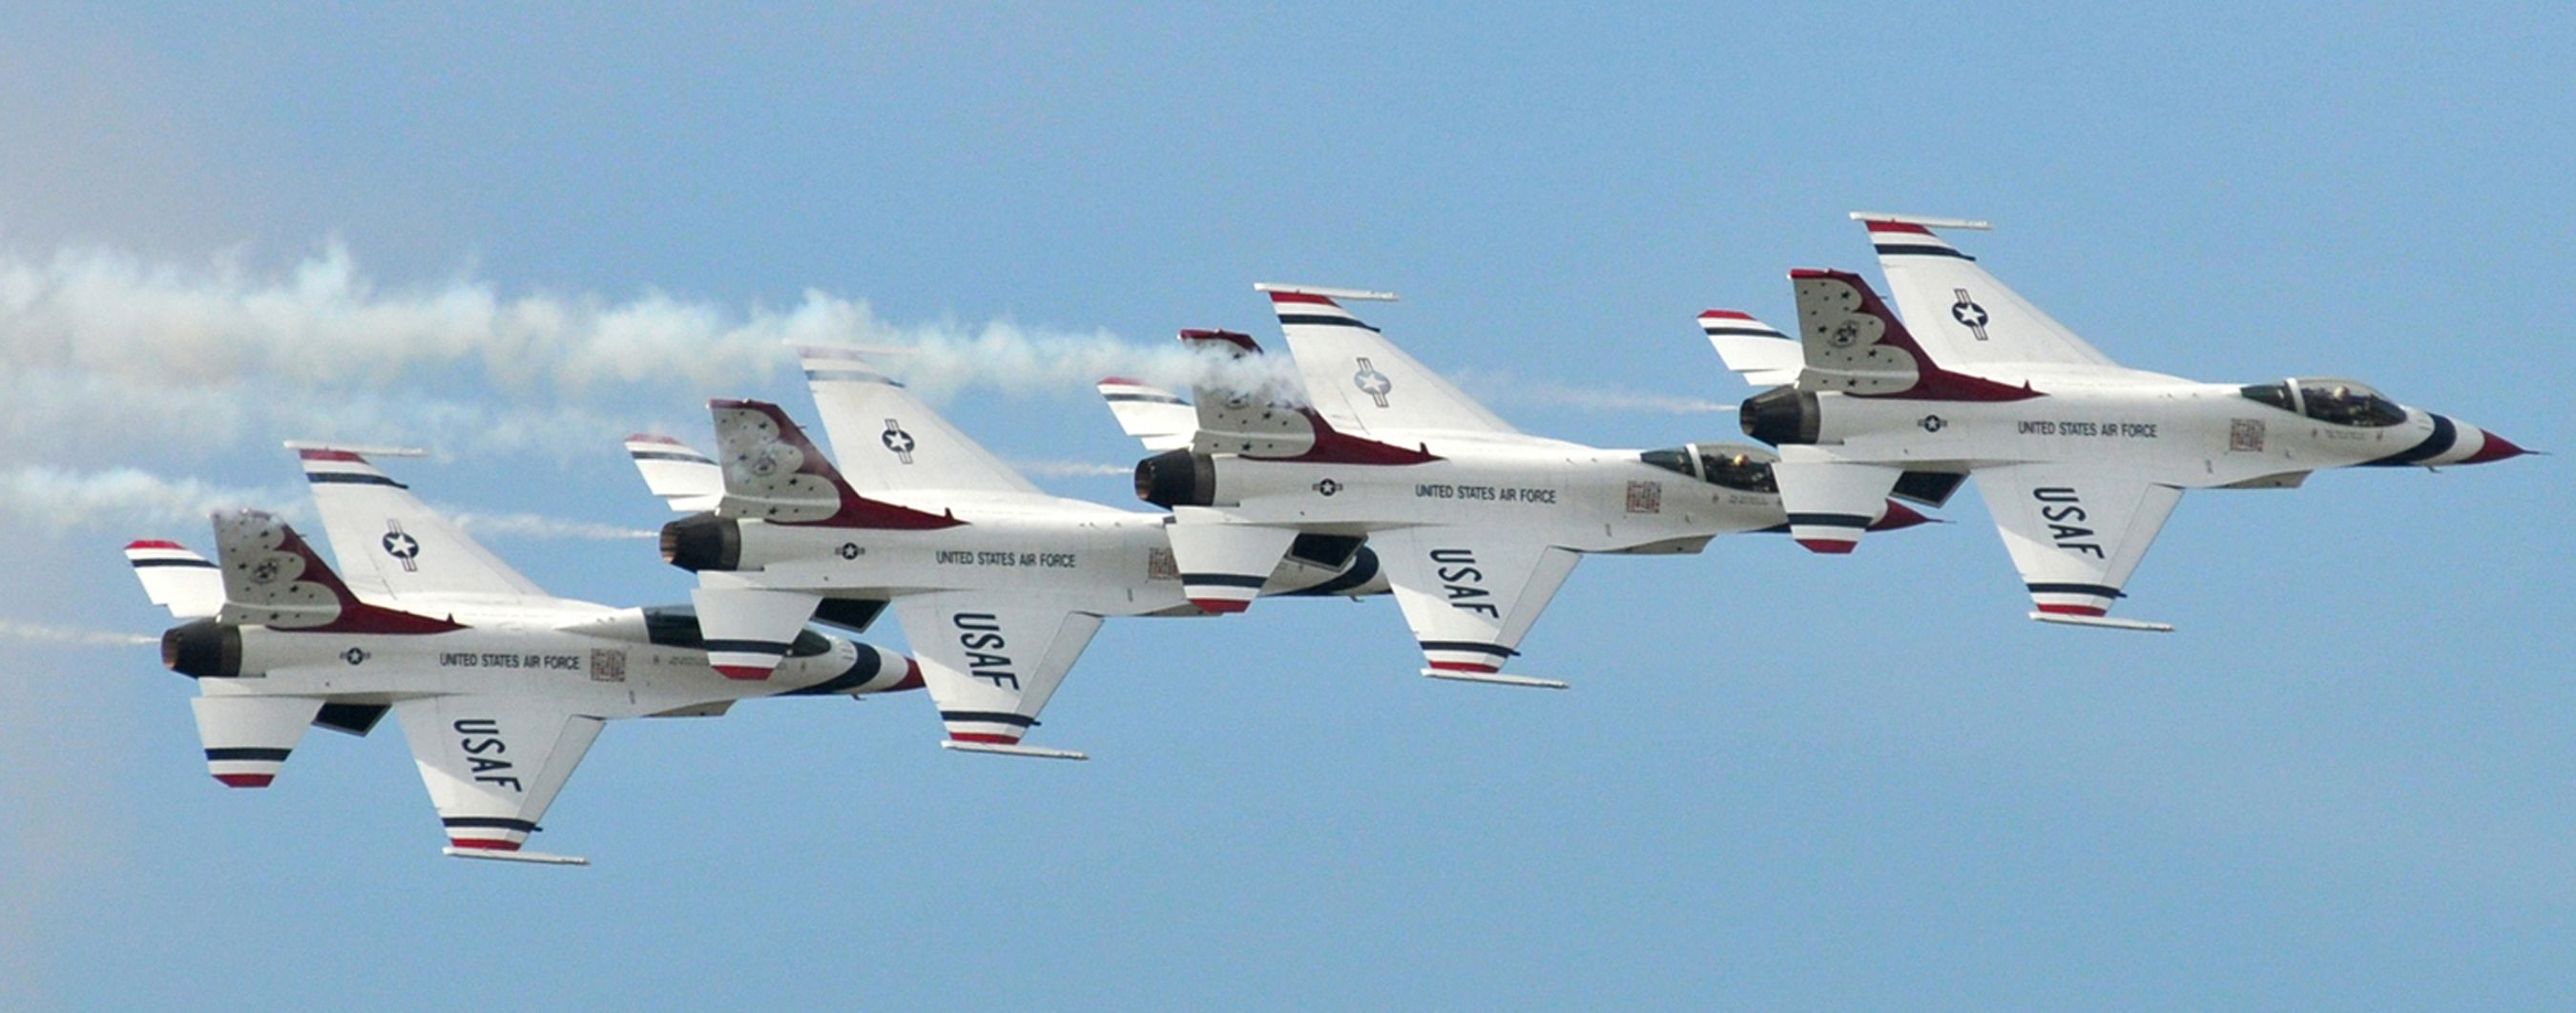 air force thunderbirds Google Search Usaf thunderbirds